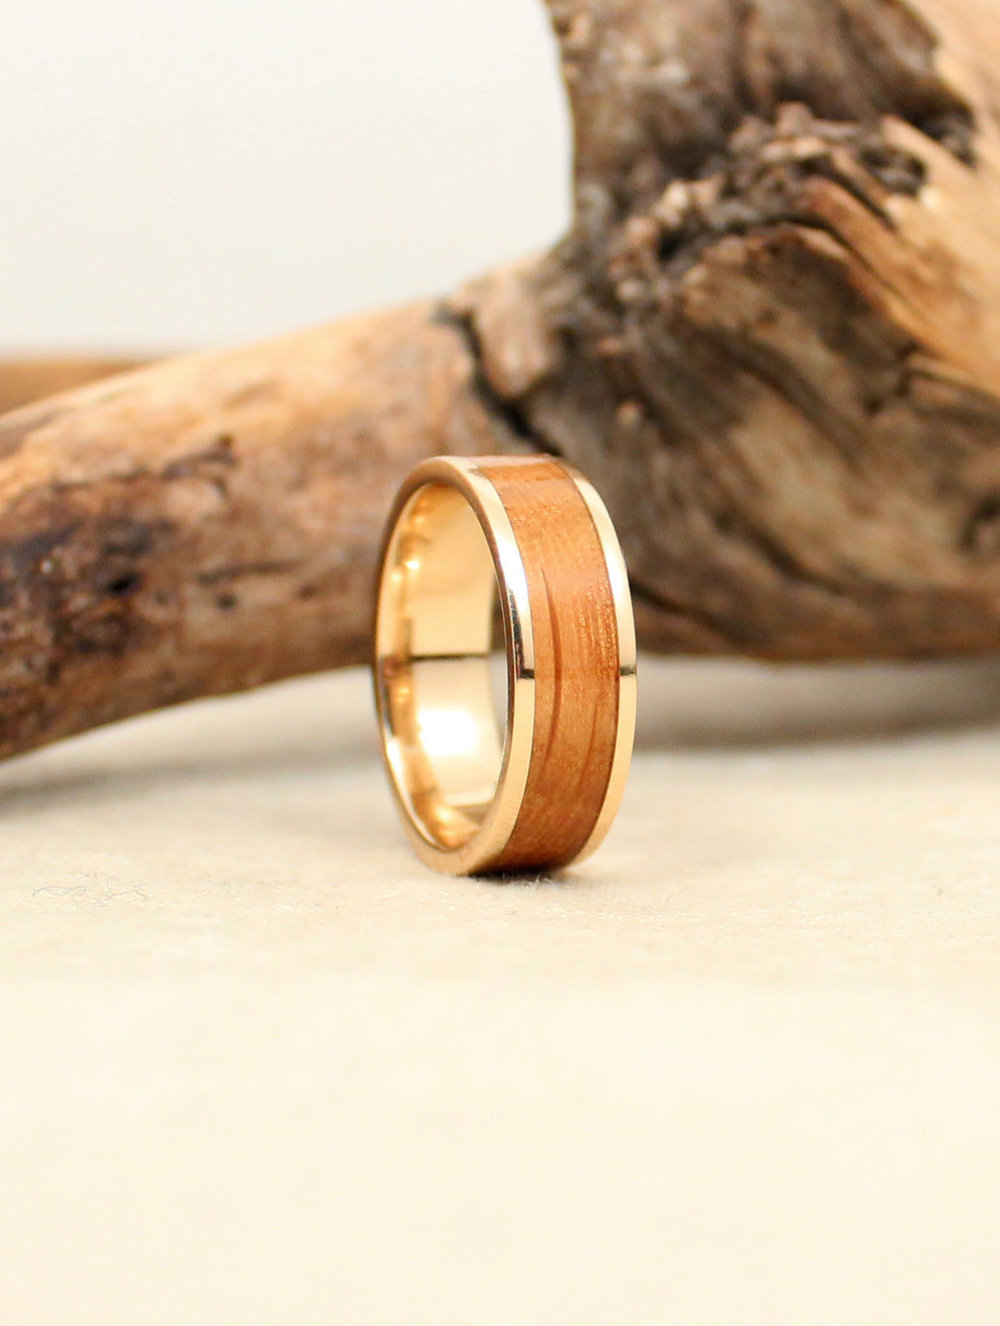 Whiskey Barrel White Oak Lined with Gold WedgeWood Rings